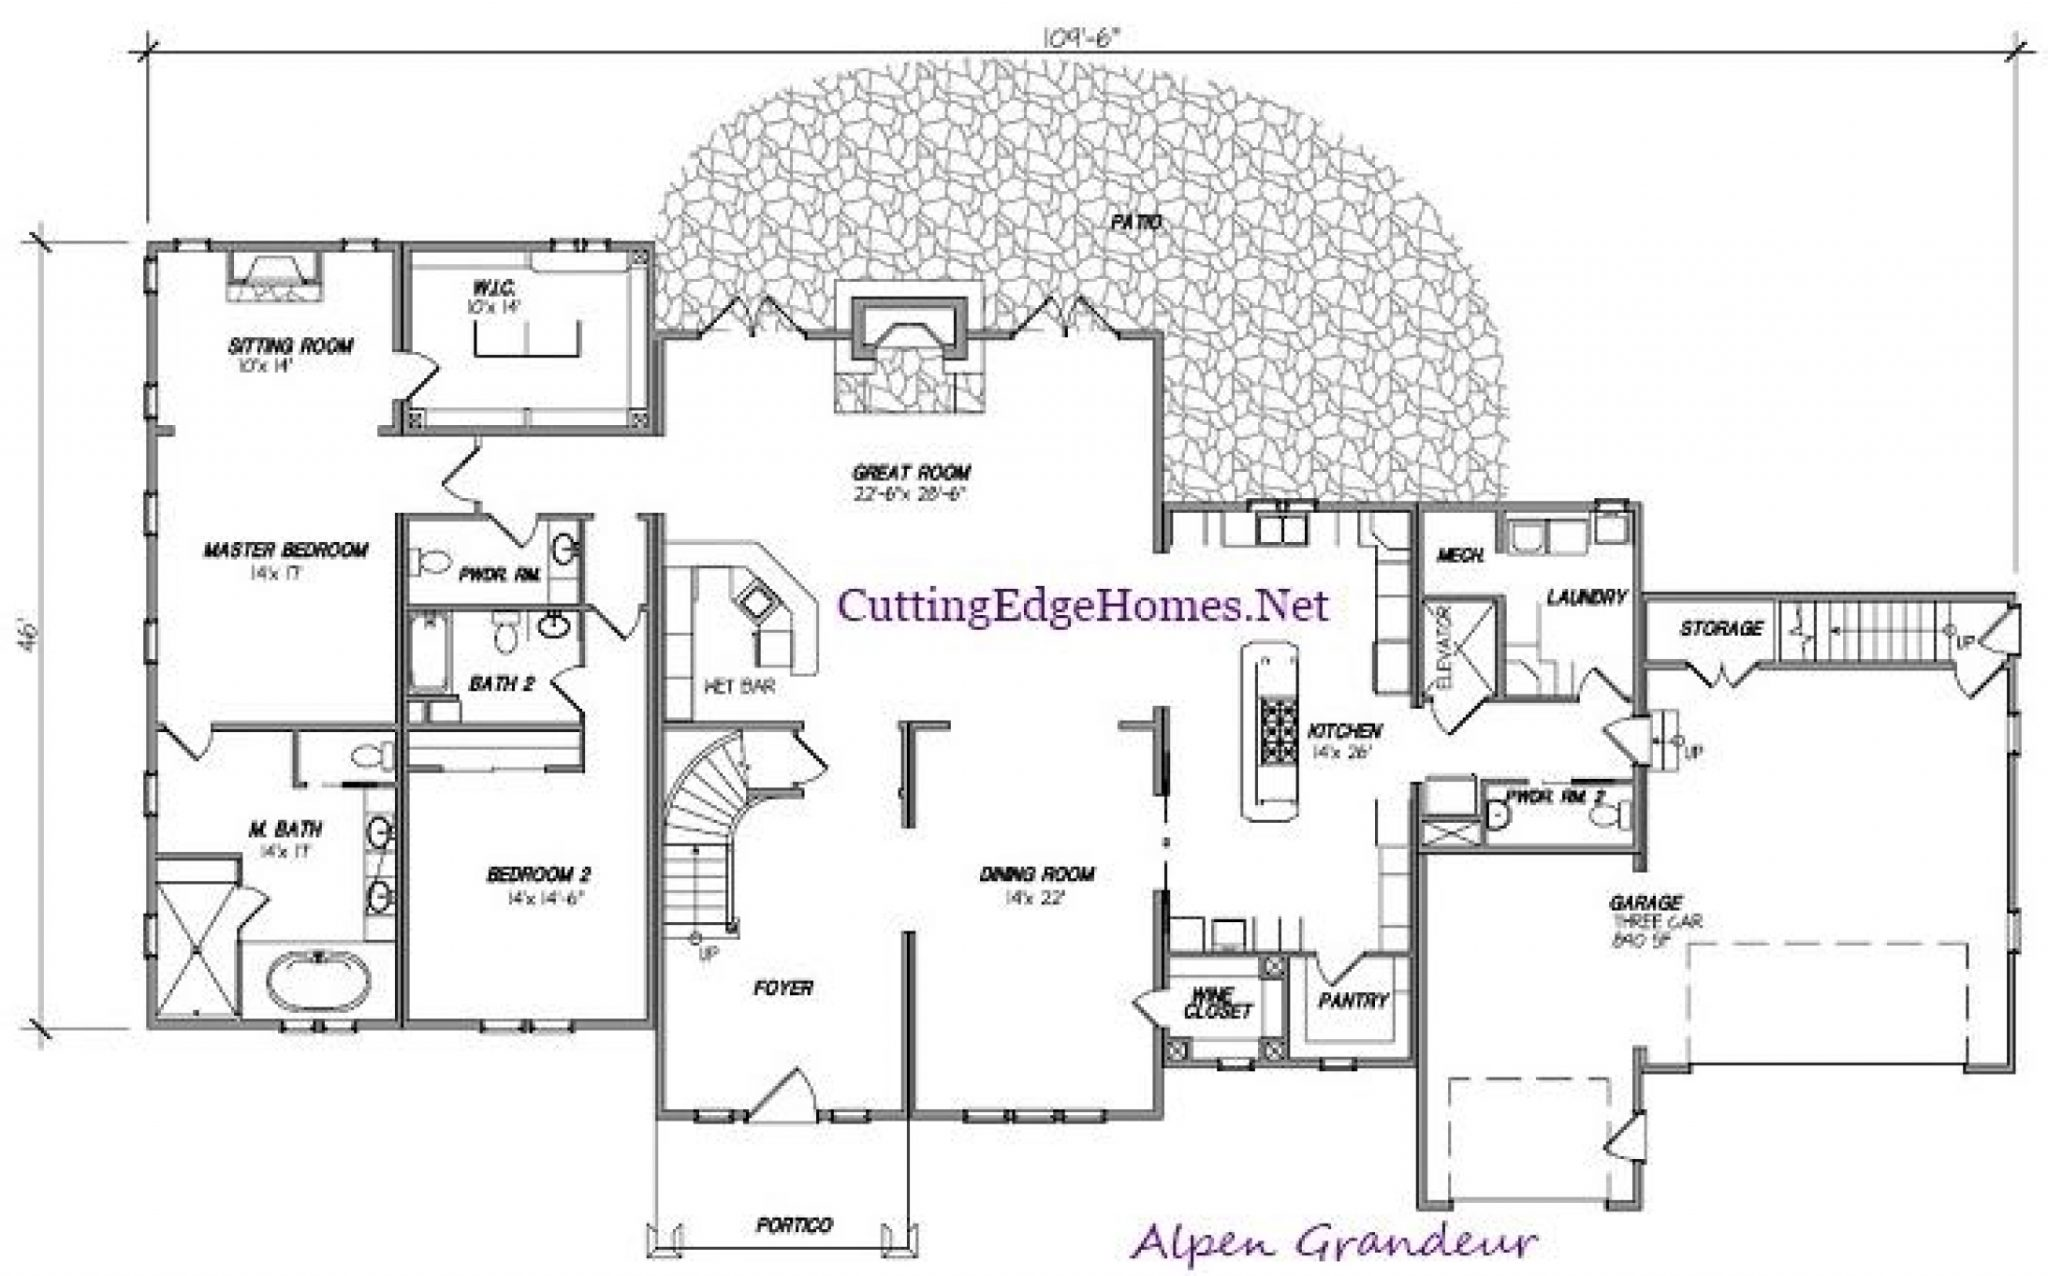 Floor Plan Elevation Pdf : Modular homes the alpen grandeur floor plan and elevation pdf